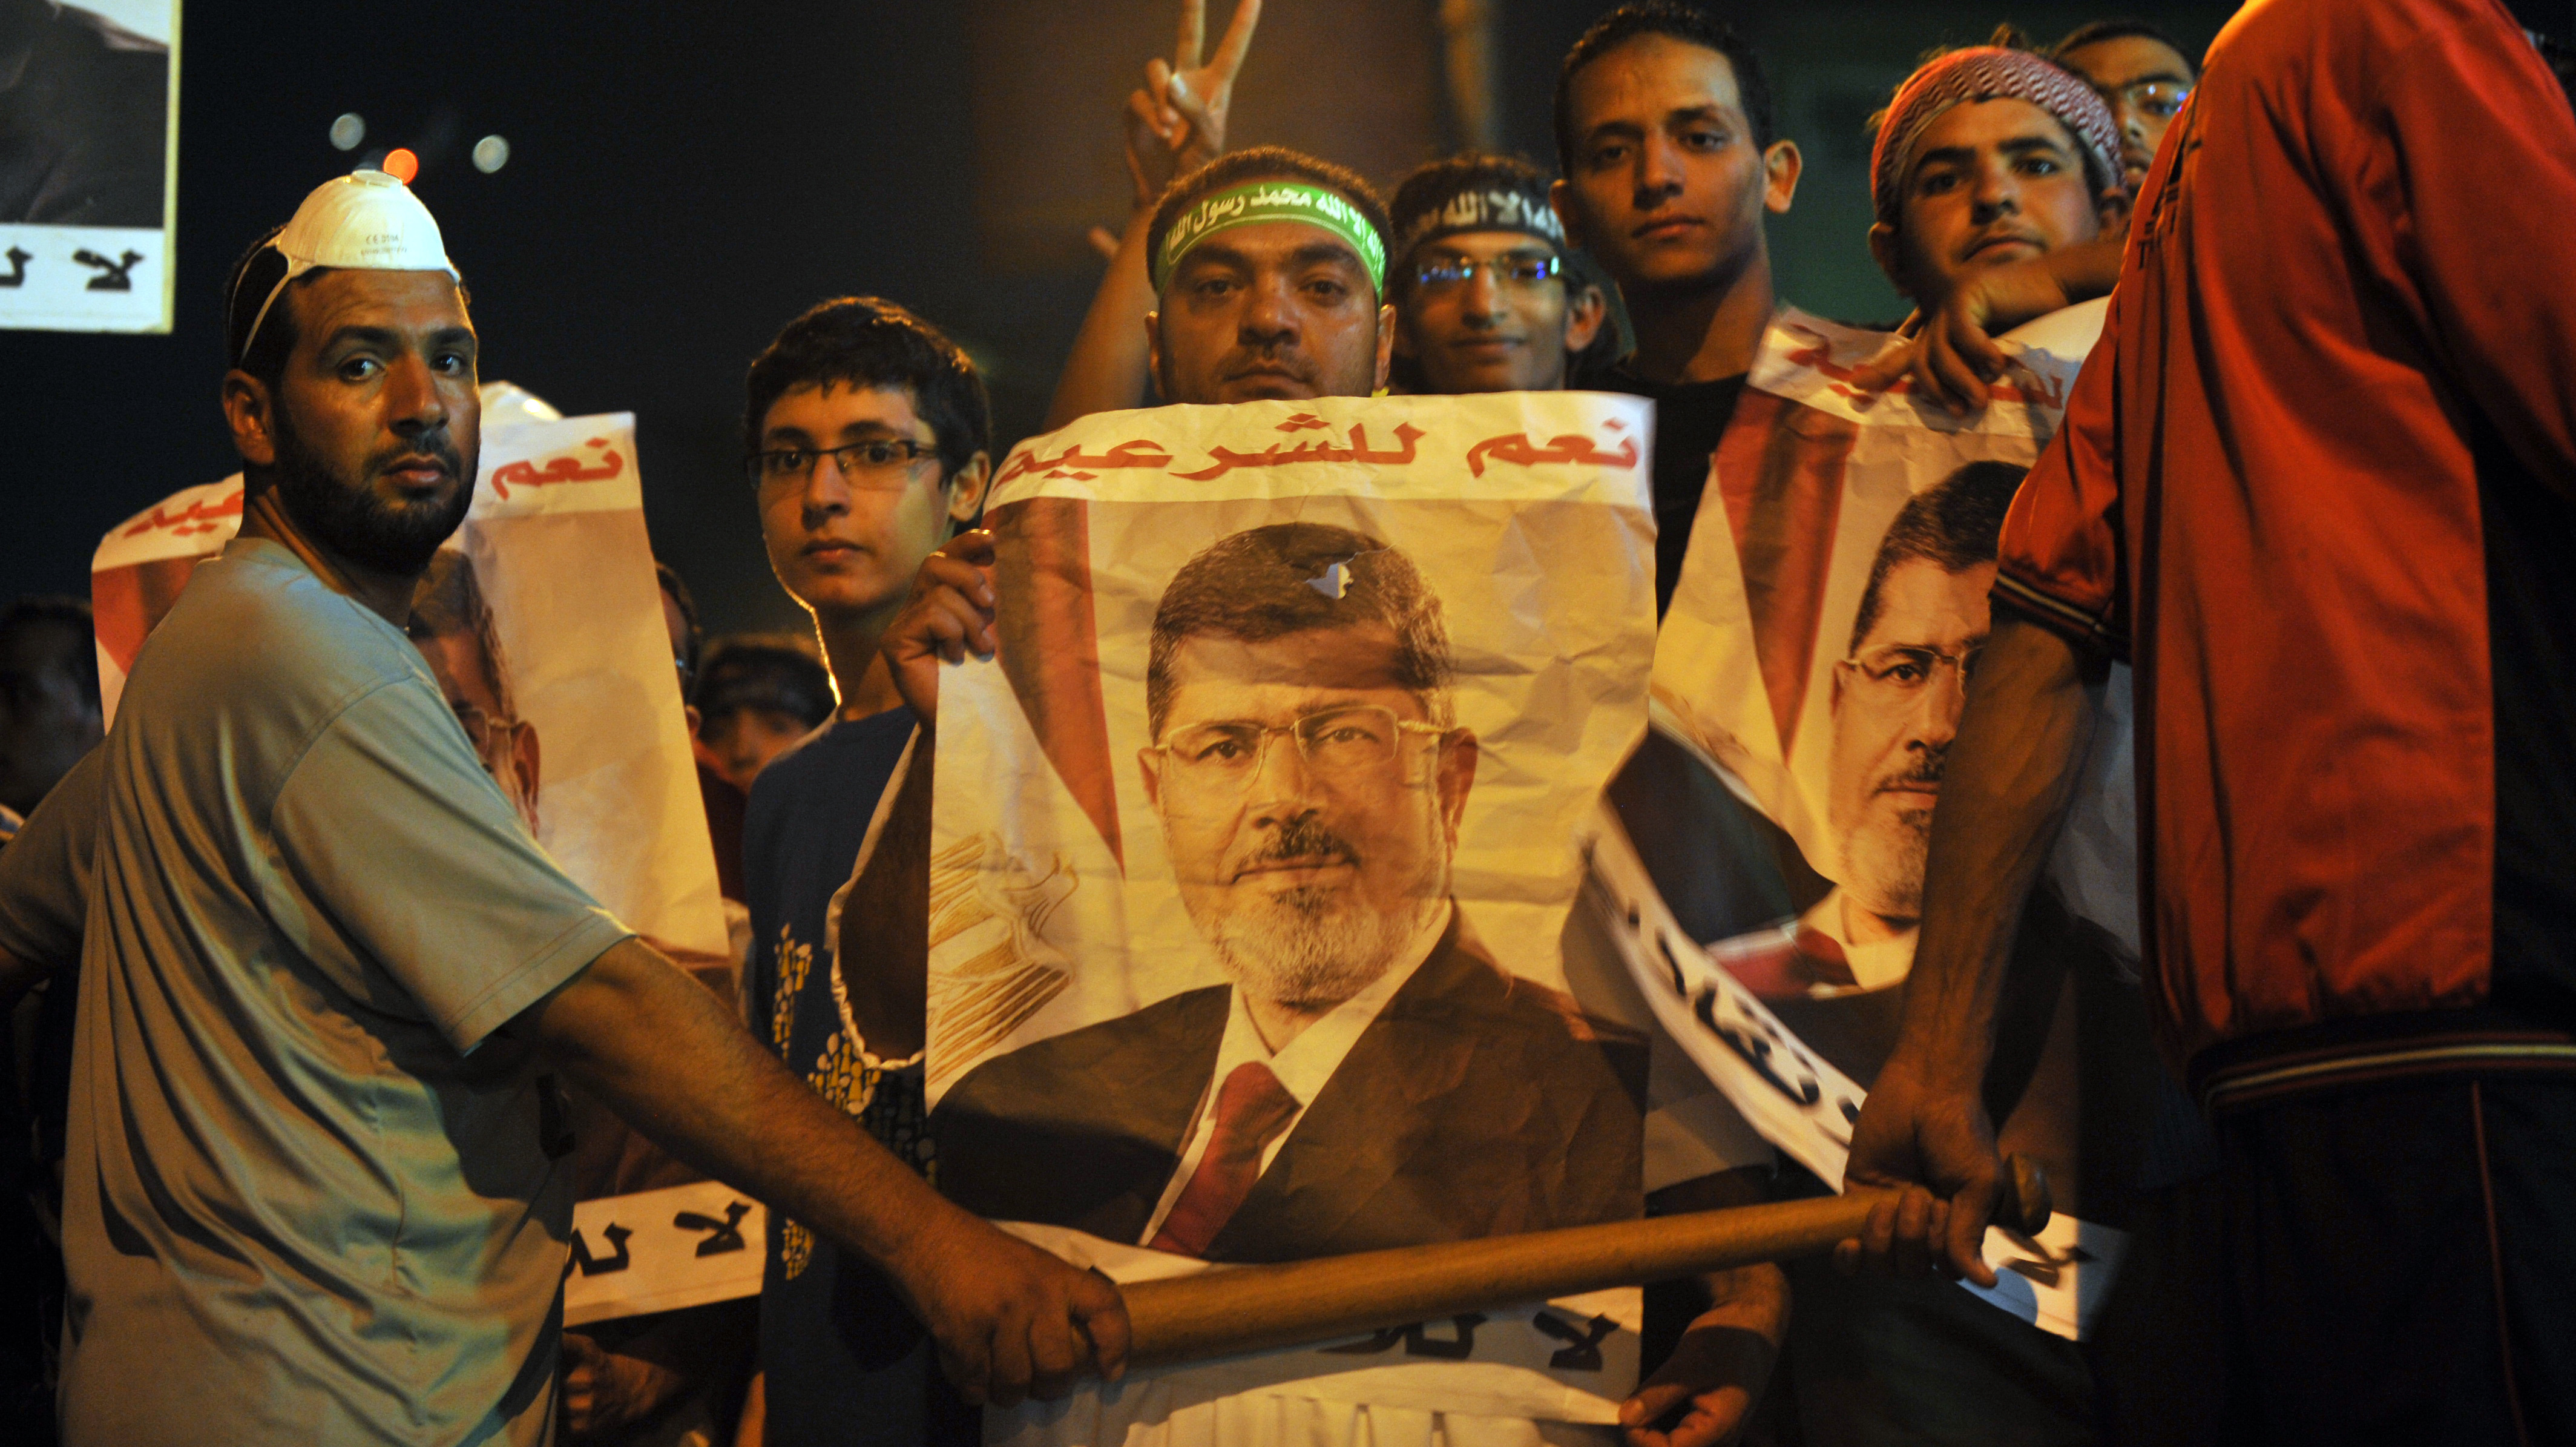 Egypt's Ousted President Morsi Is 'Well,' Says EU Official